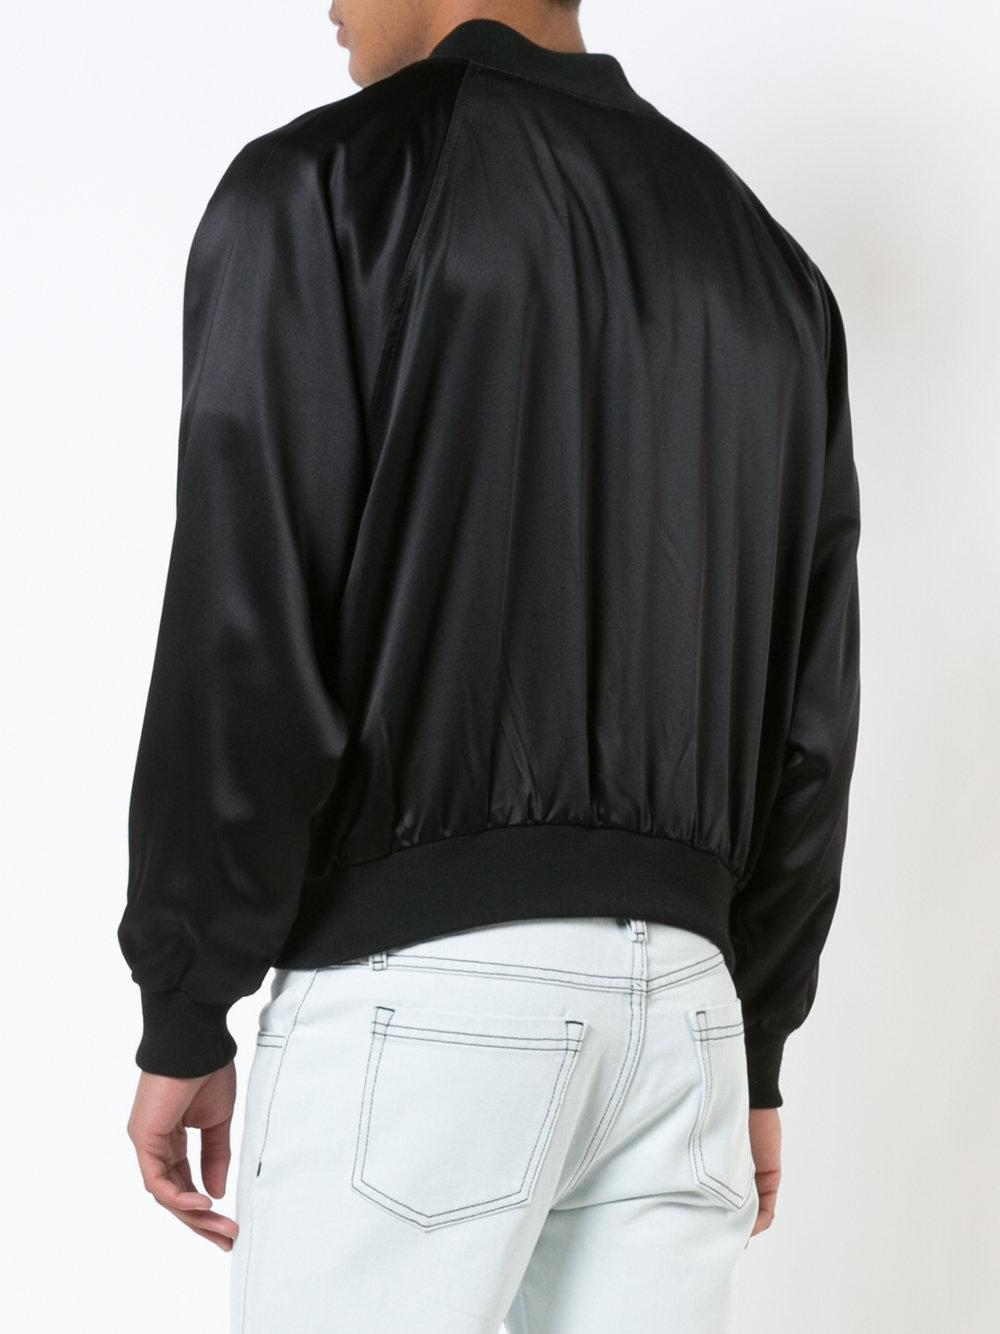 Enfants Riches Deprimes Silk Germs Bomber Jacket in Black for Men